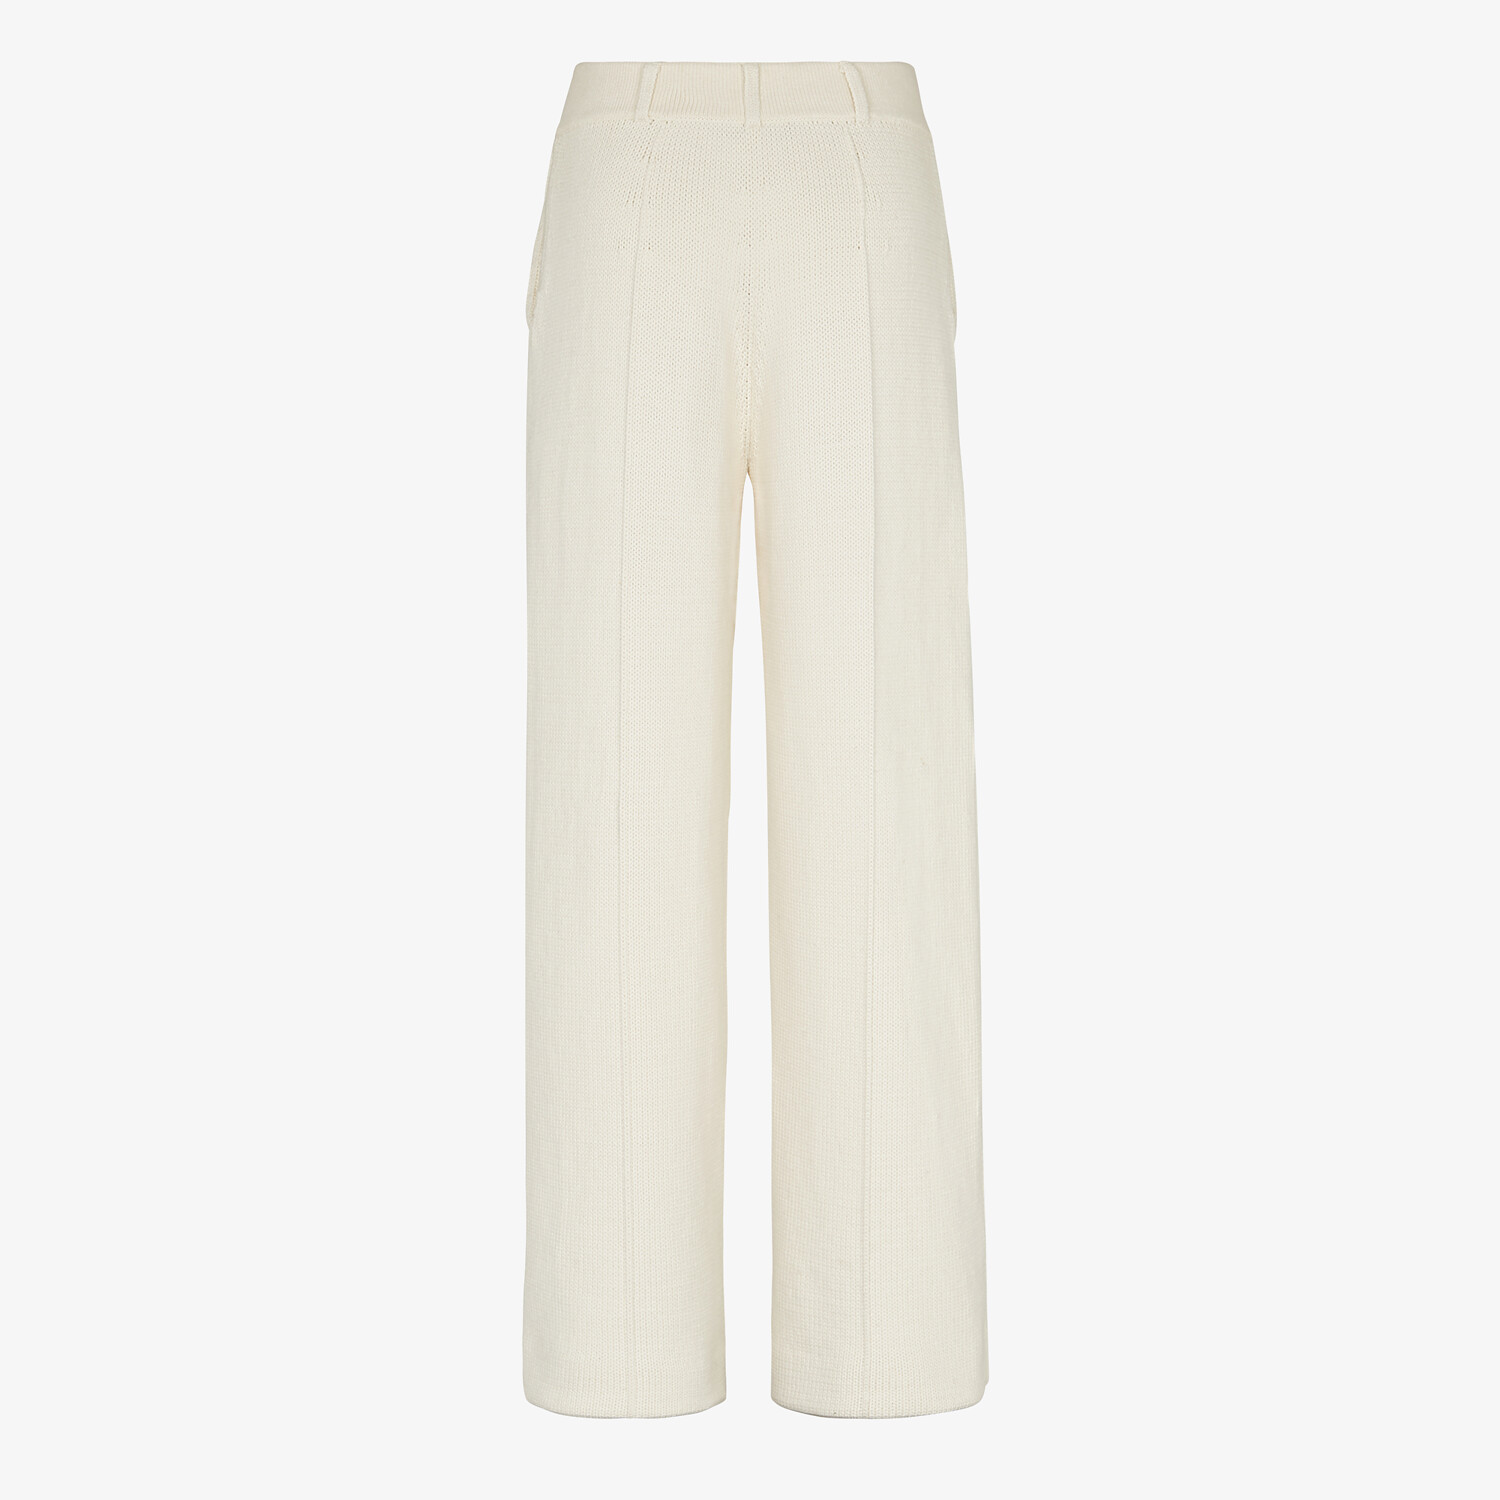 FENDI PANTS - White cotton pants - view 2 detail